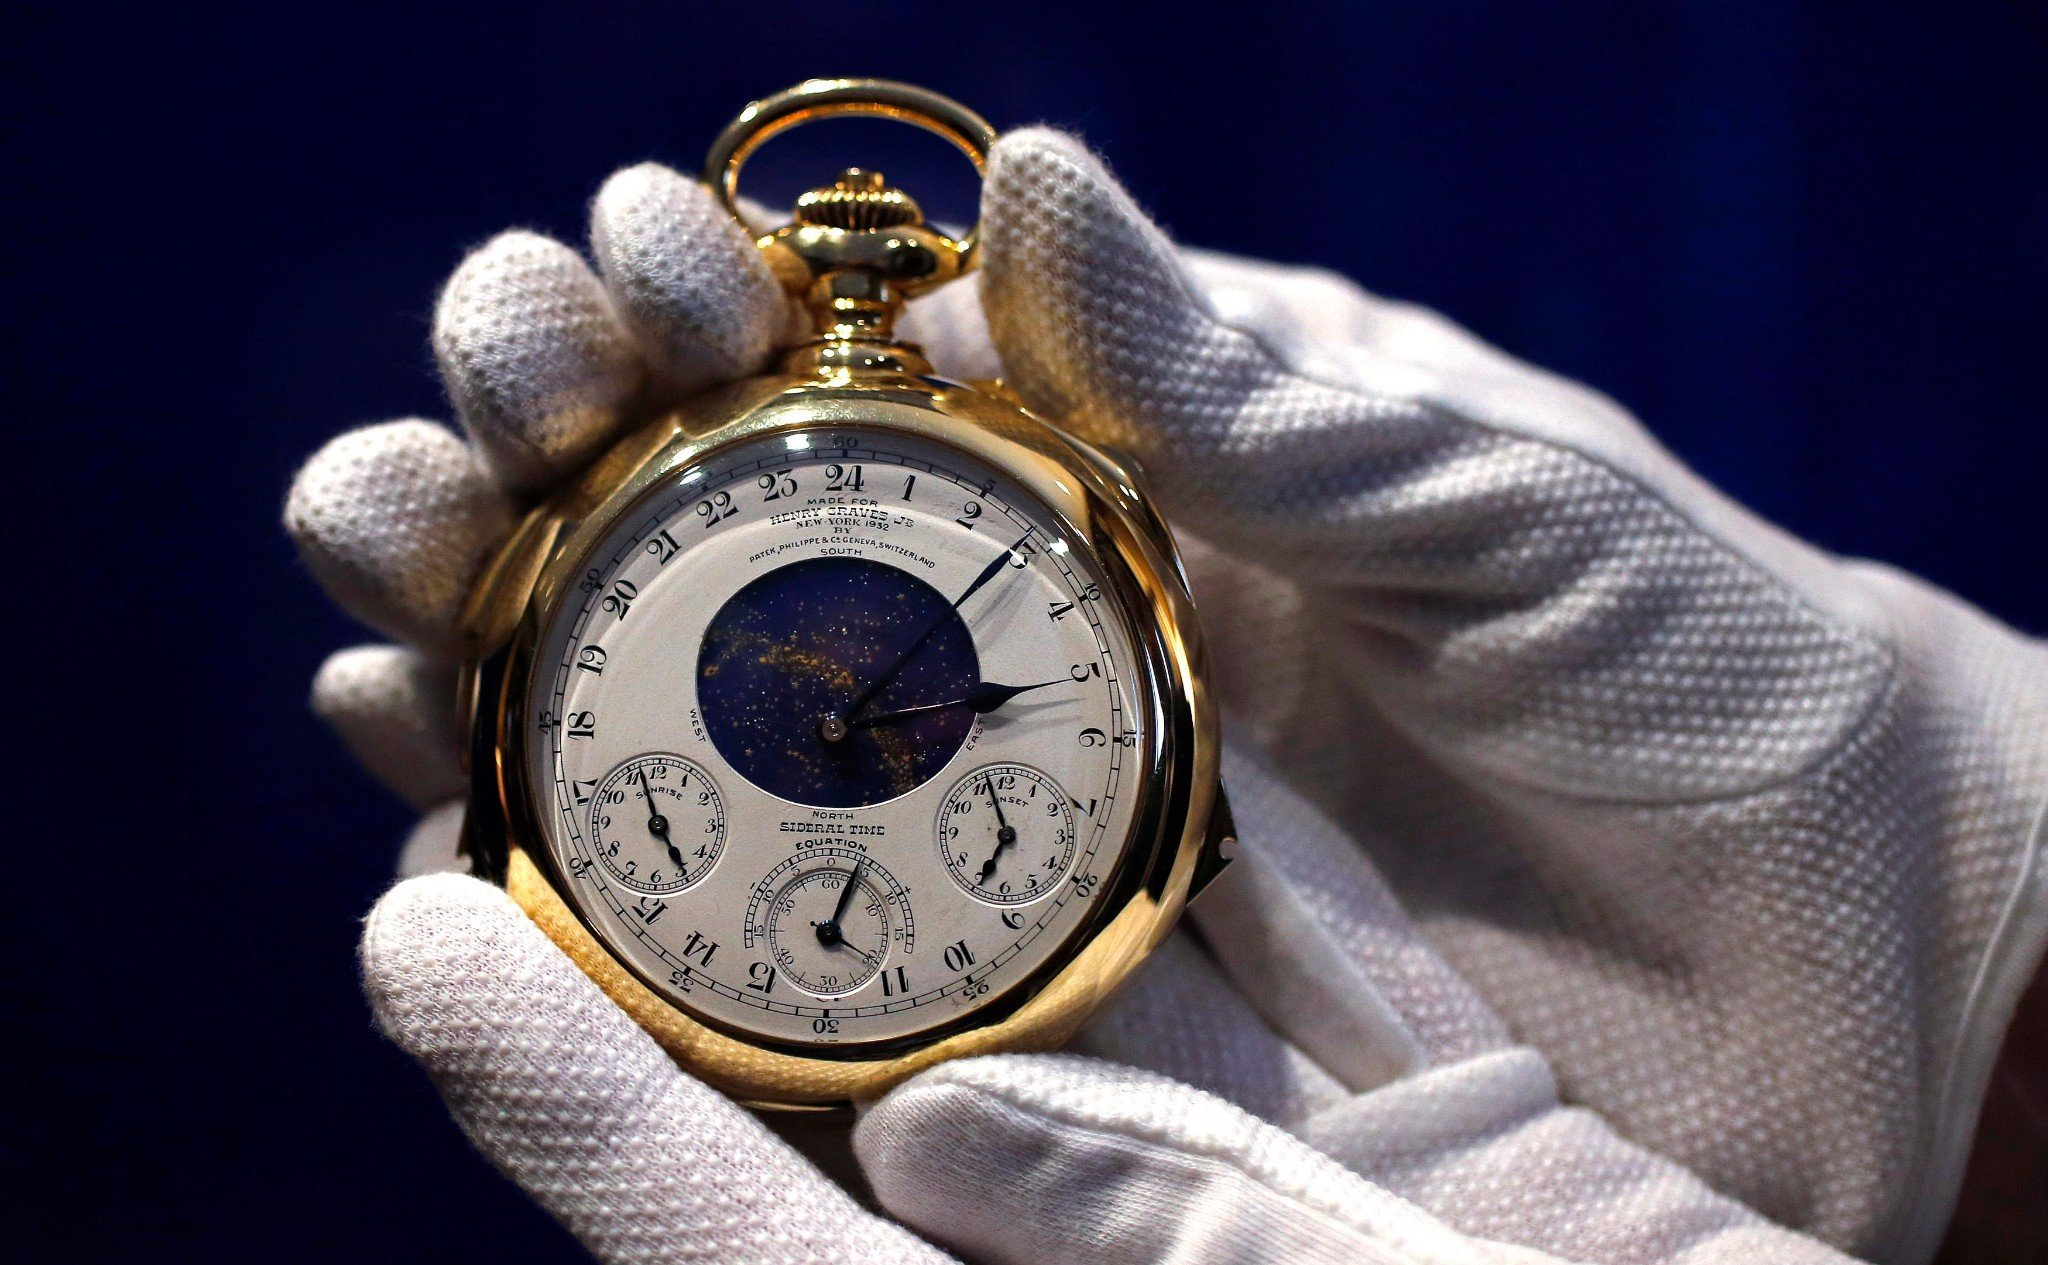 Patek Philippe The Supercomplication